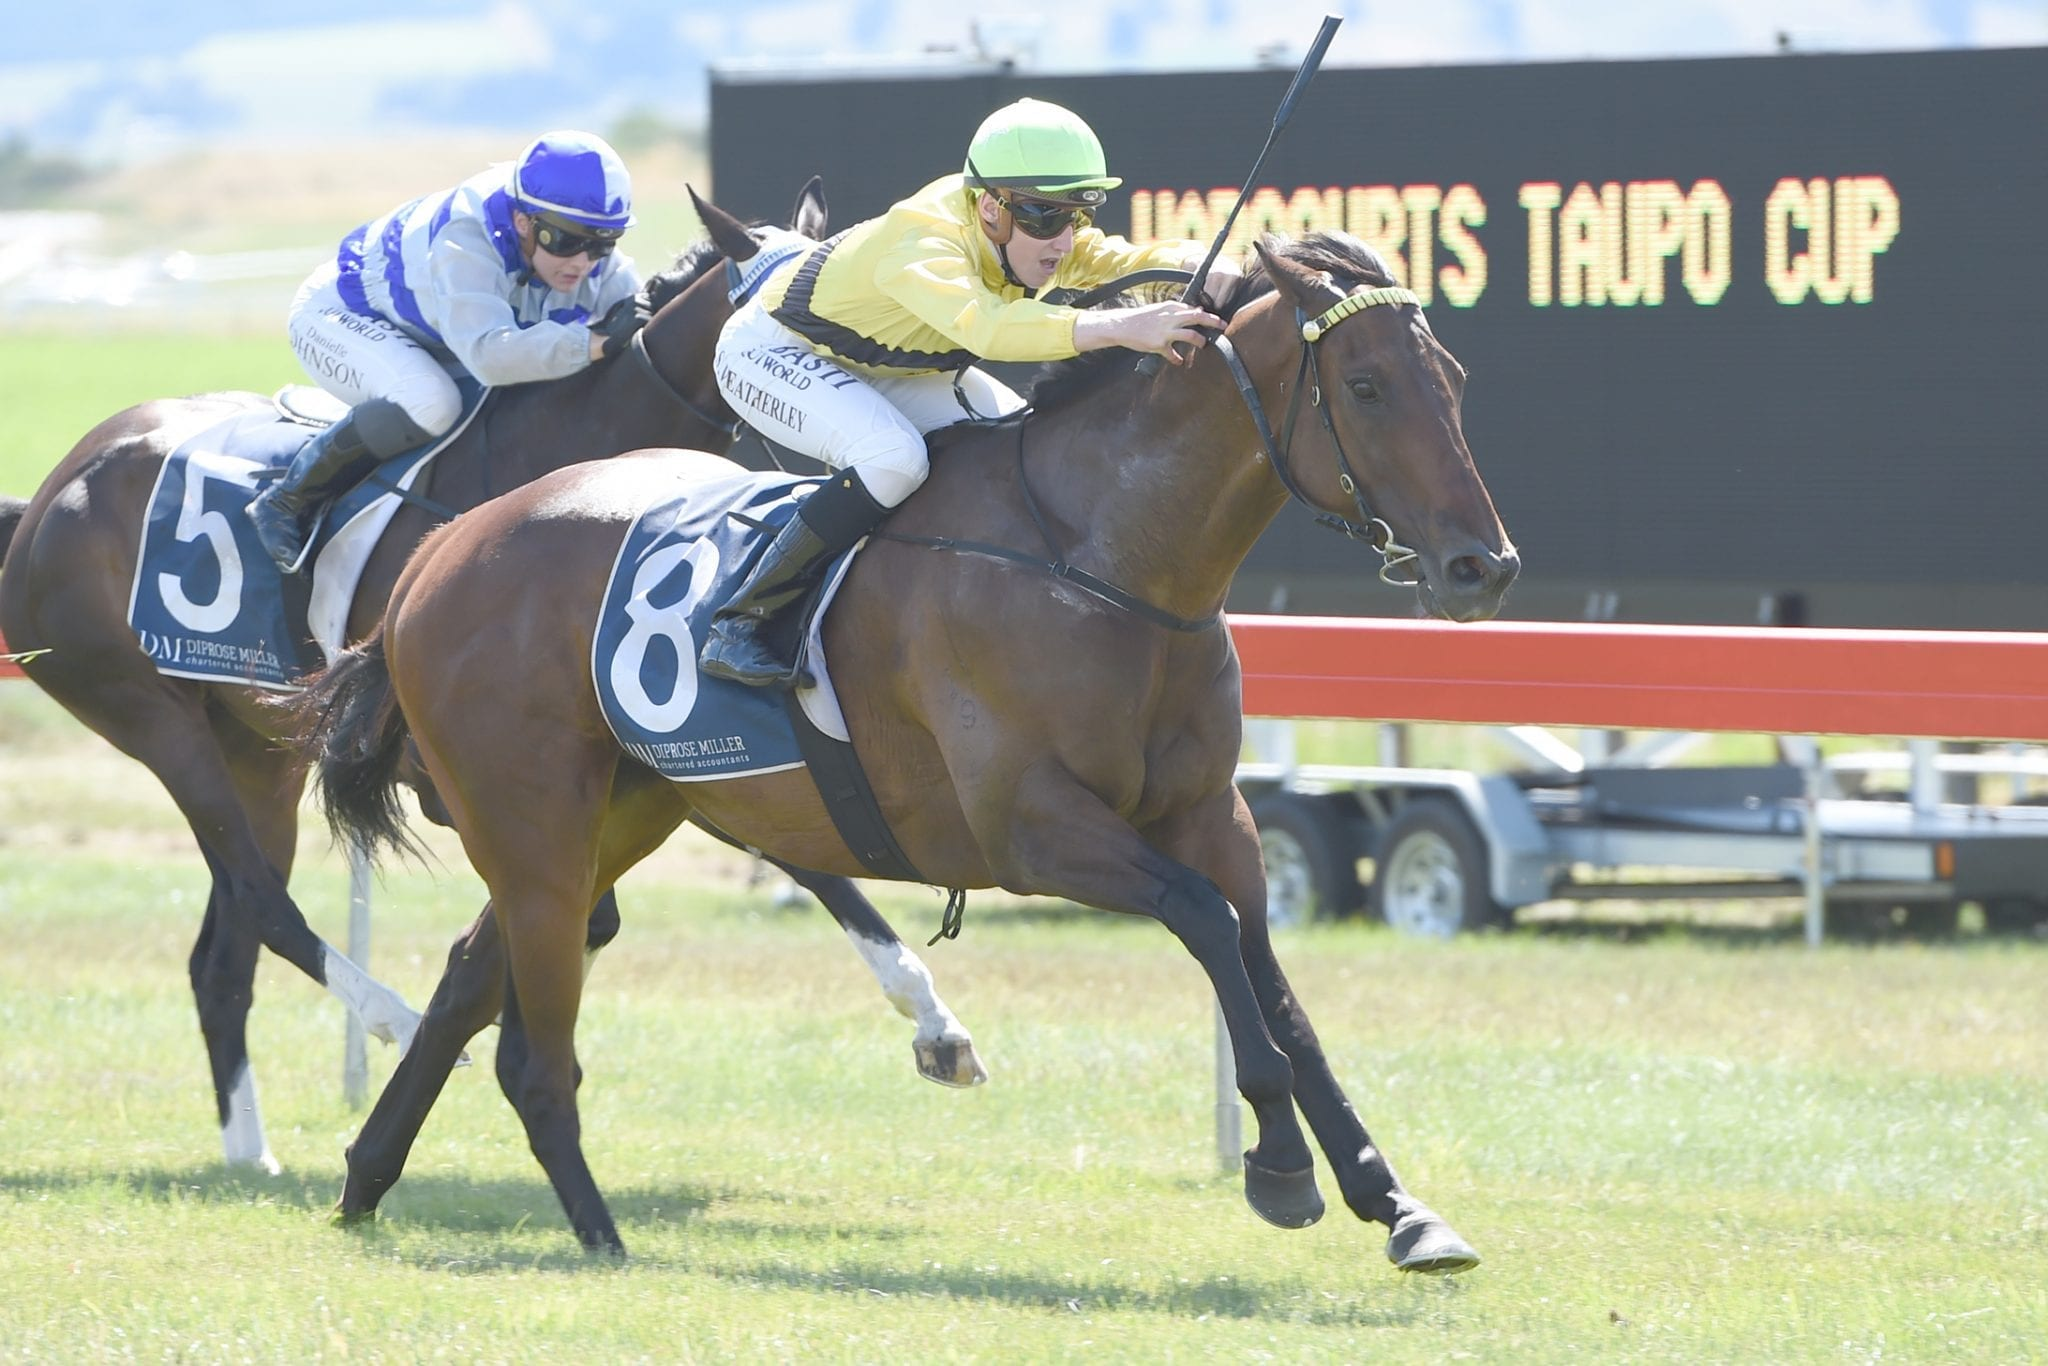 Nothing Trivial winning the 2017 Taupo Cup